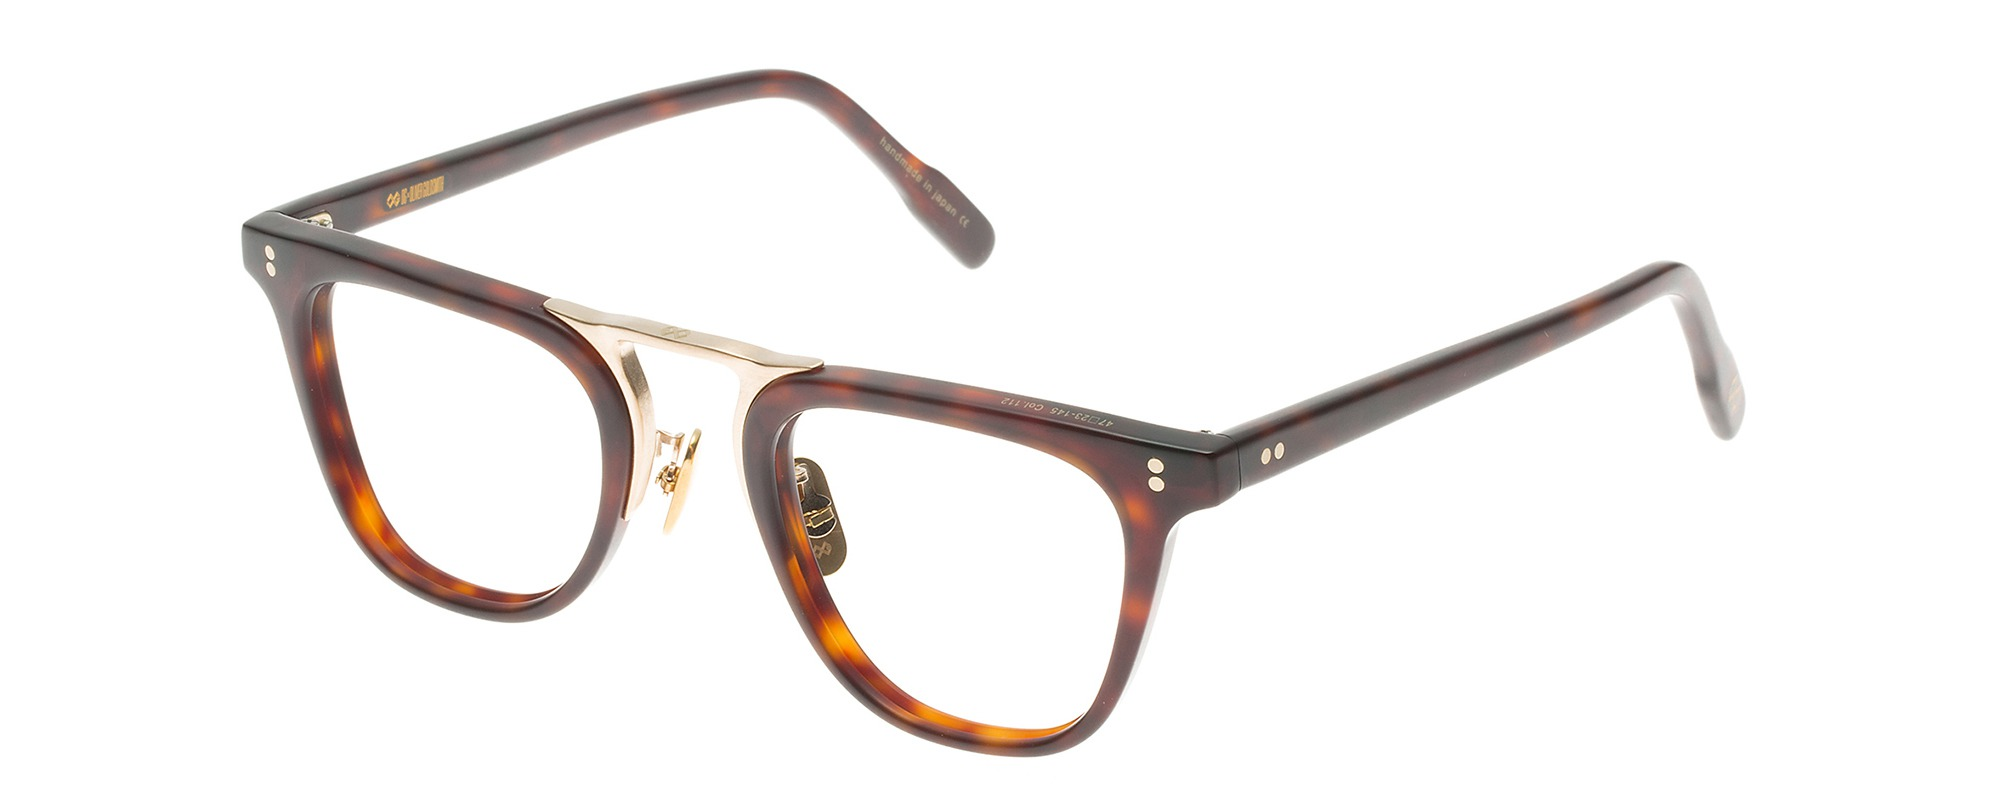 OG × OLIVER GOLDSMITH NOMAD47 ノマド